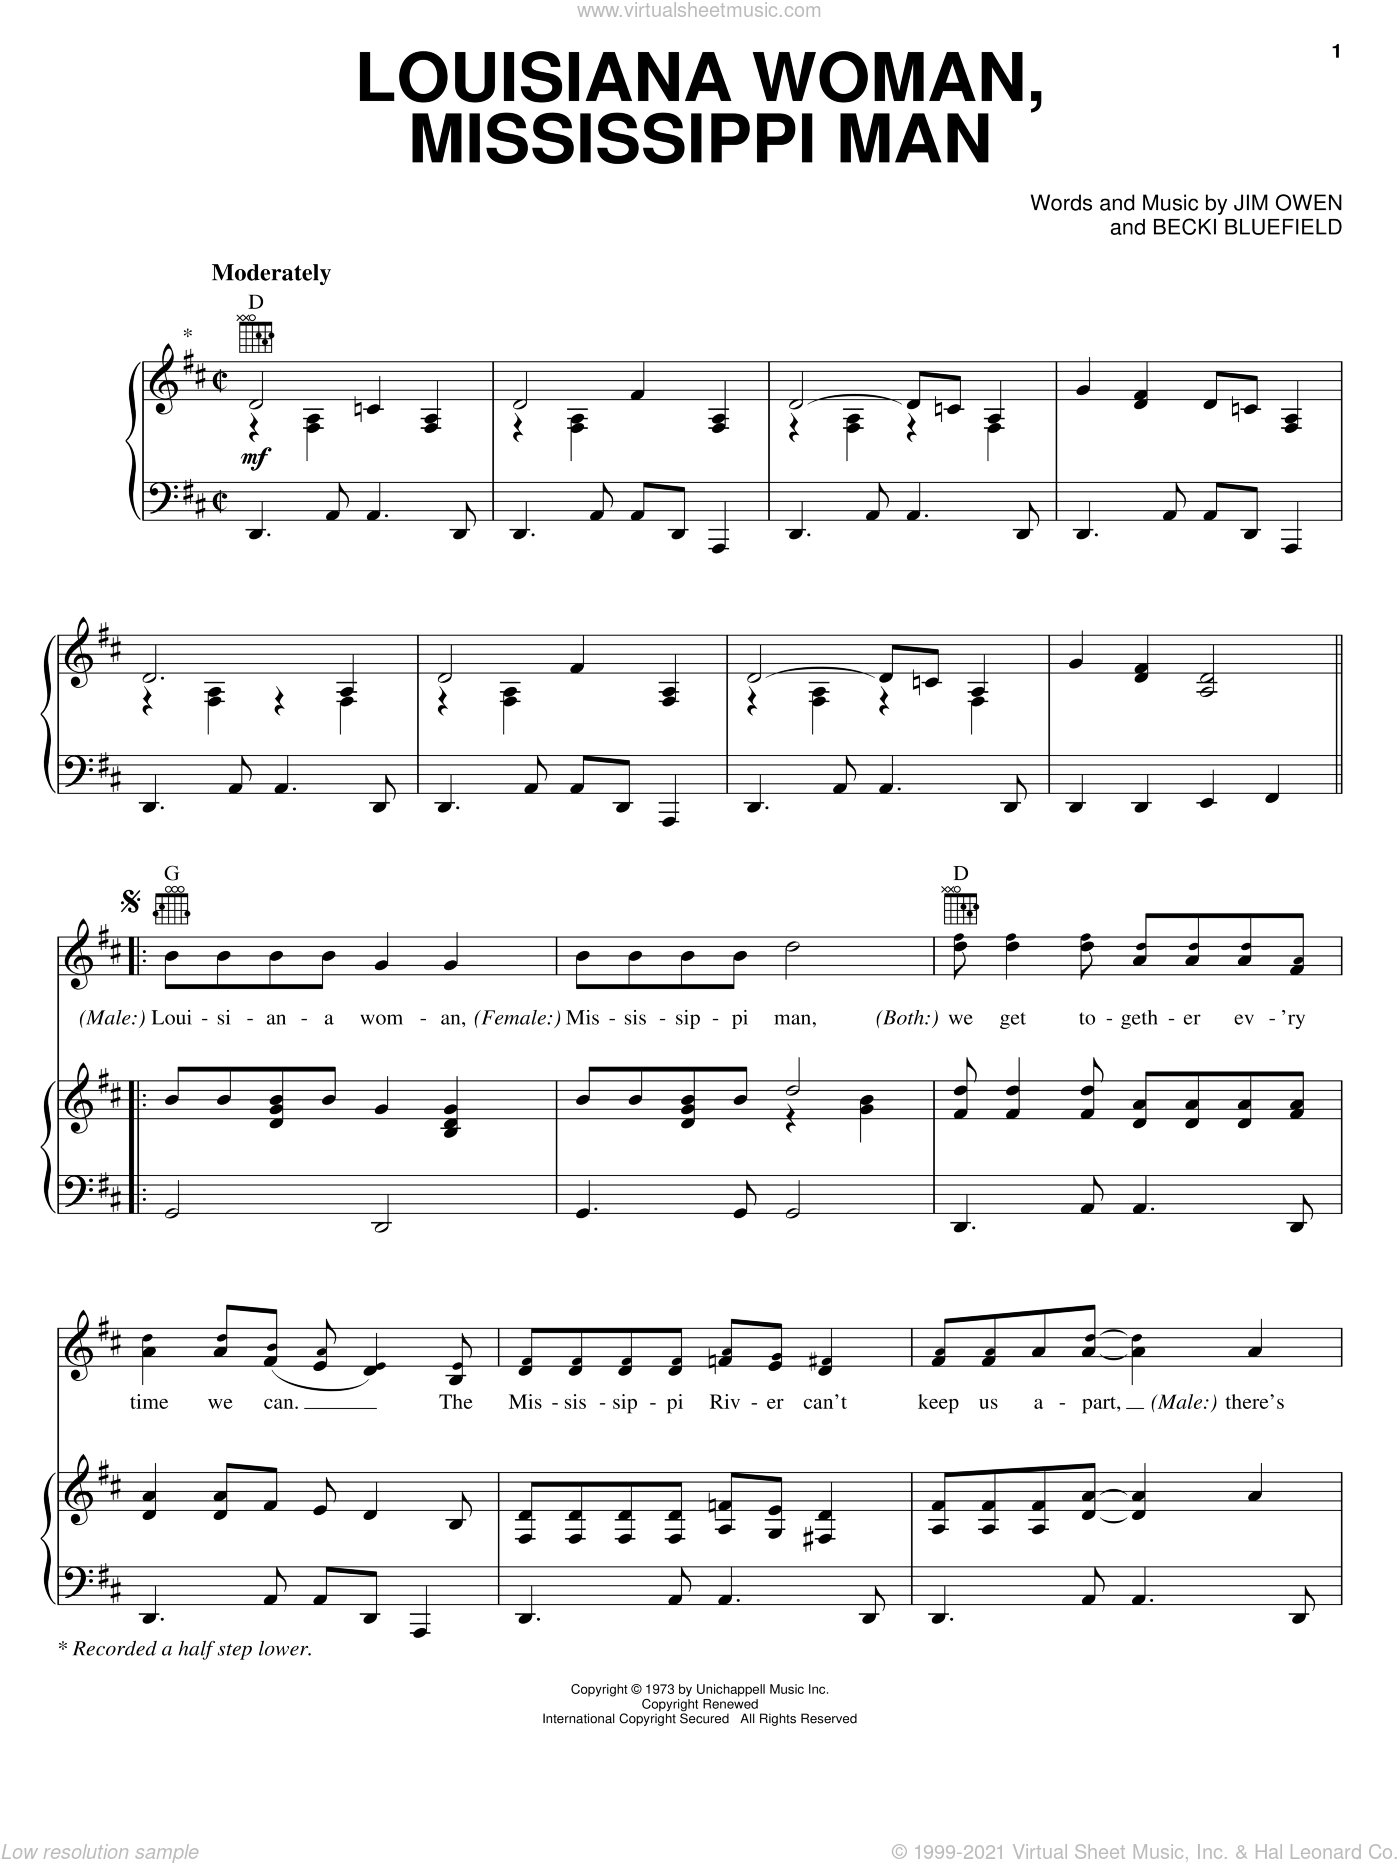 Louisiana Woman, Mississippi Man sheet music for voice, piano or guitar by Jim Owen